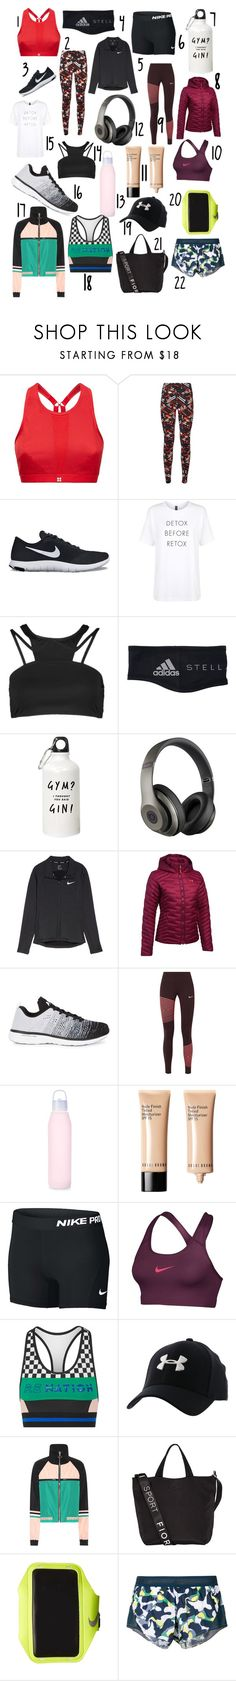 gym picks by serenasmitth on Polyvore featuring Sweaty Betty, P.E Nation, Under Armour, NIKE, adidas, Athletic Propulsion Labs, Fiorelli, Bobbi Brown Cosmetics and lululemon